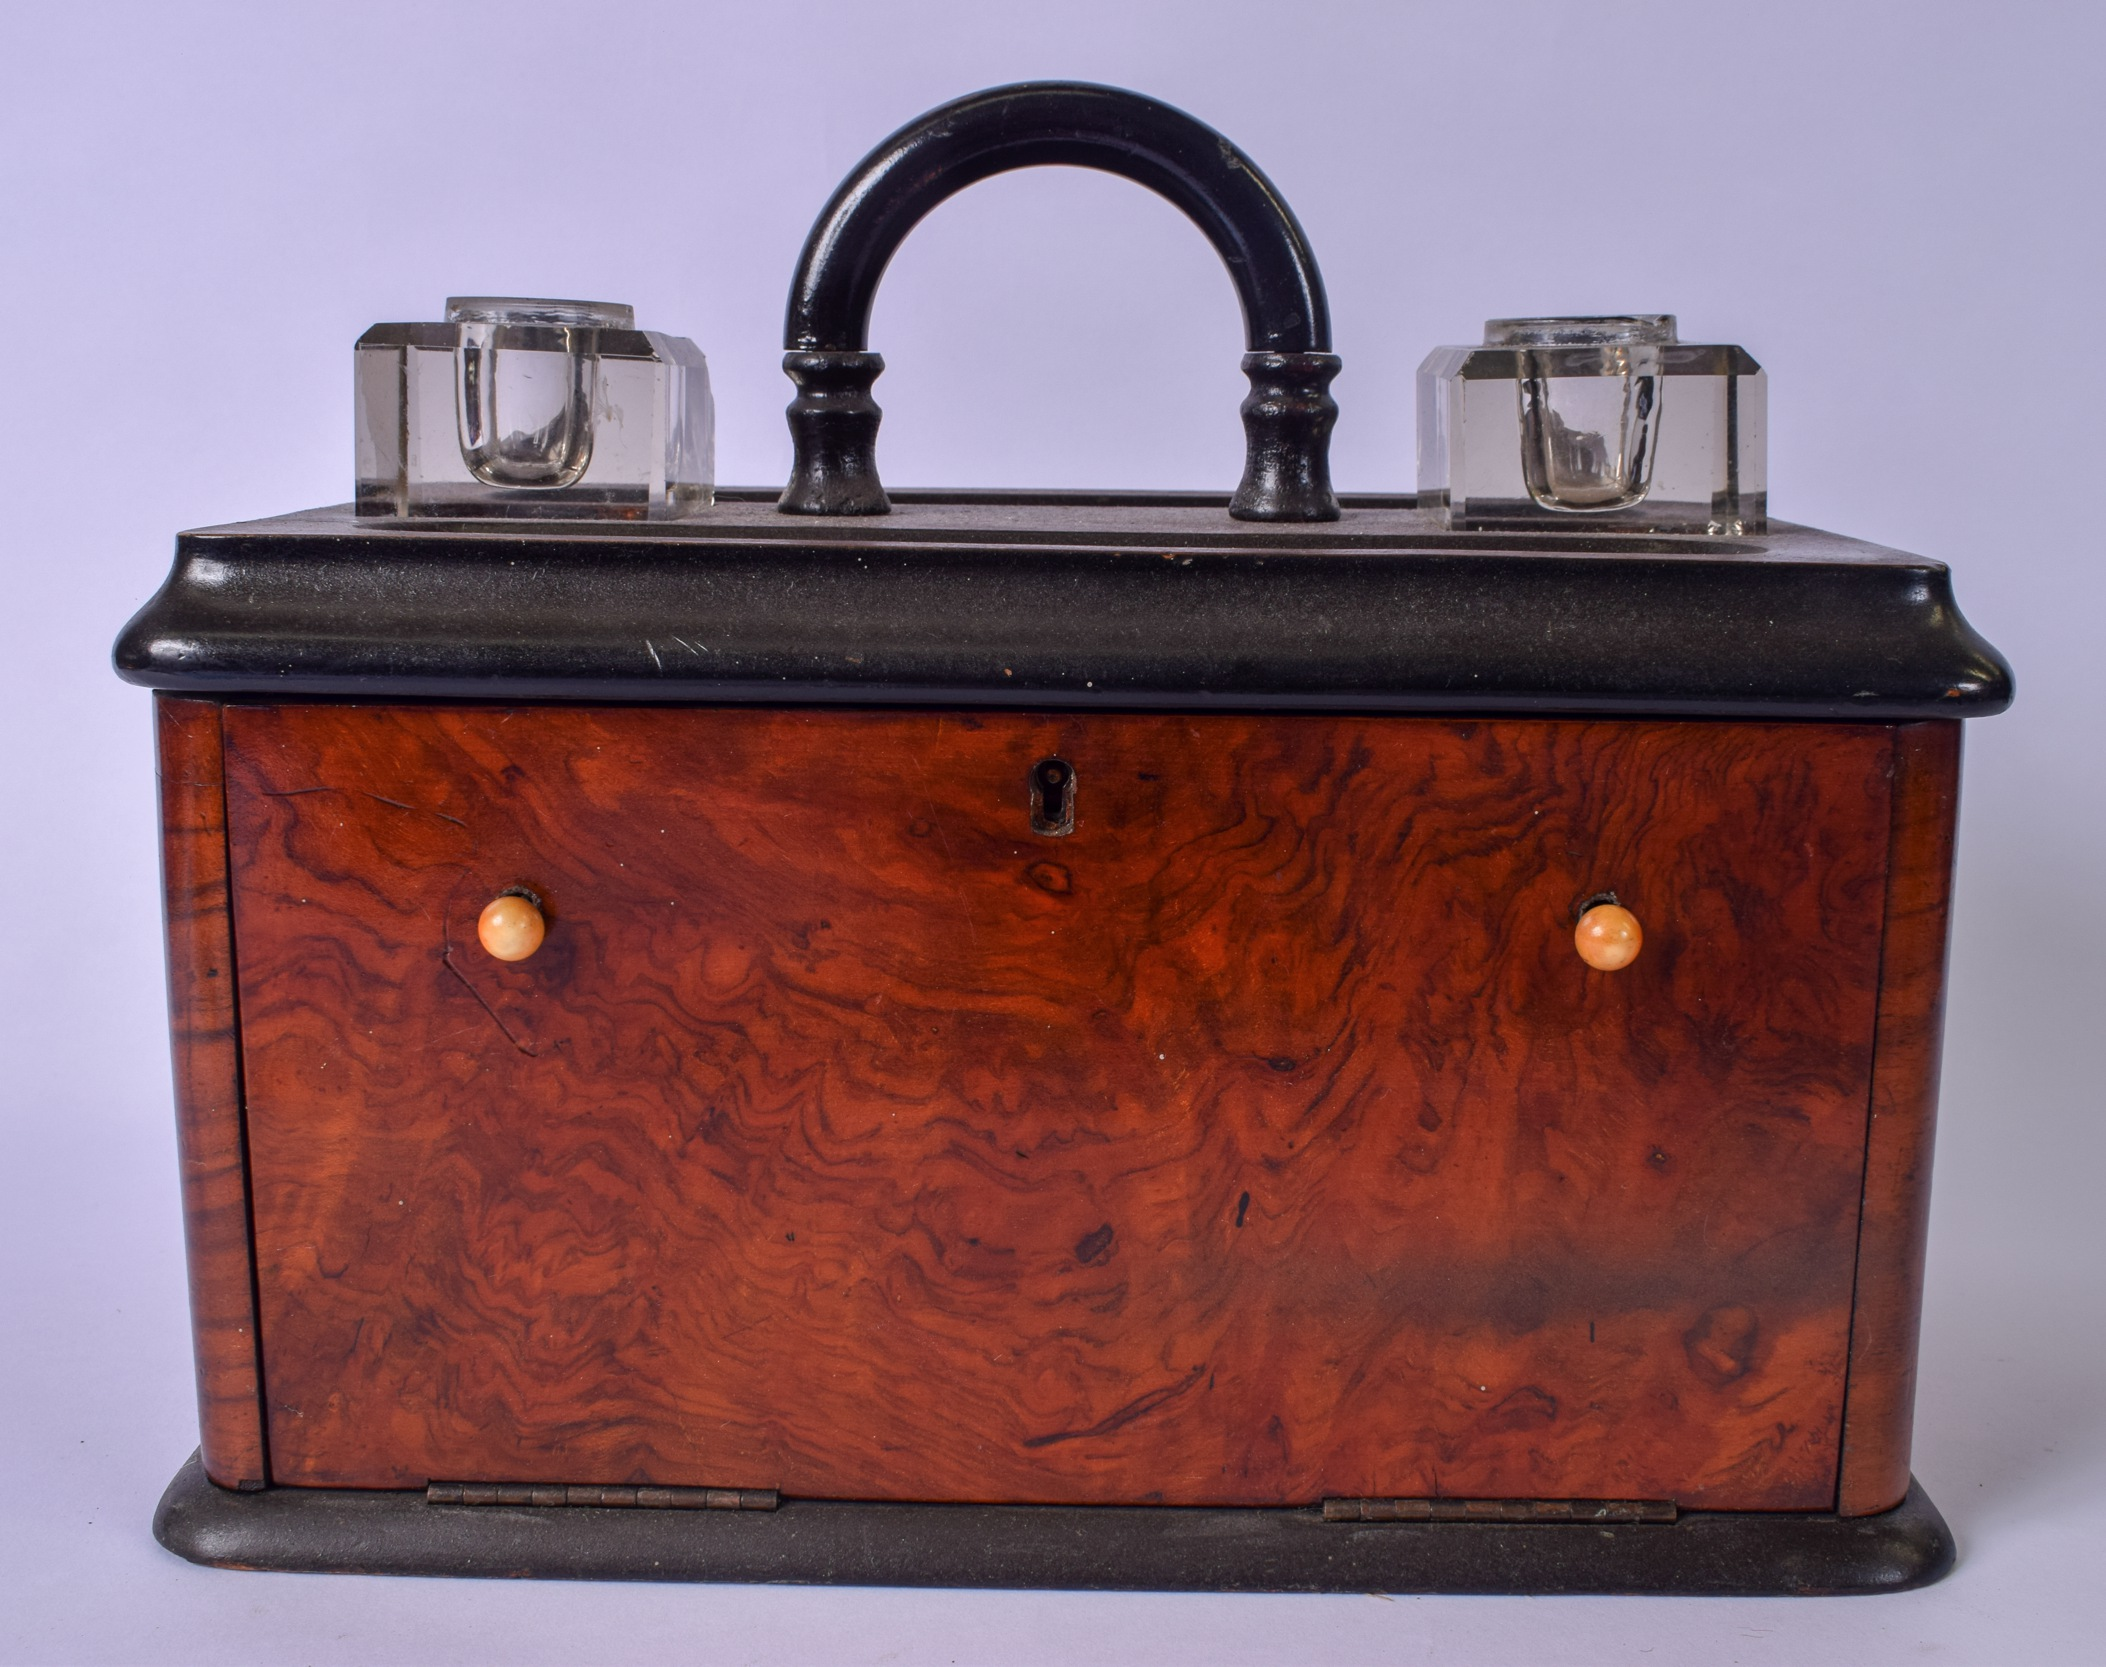 Lot 2816 - AN ANTIQUE WALNUT TRAVELLING STATIONARY BOX WITH INKWELL AND PEN TRAY, opening to reveal letter or